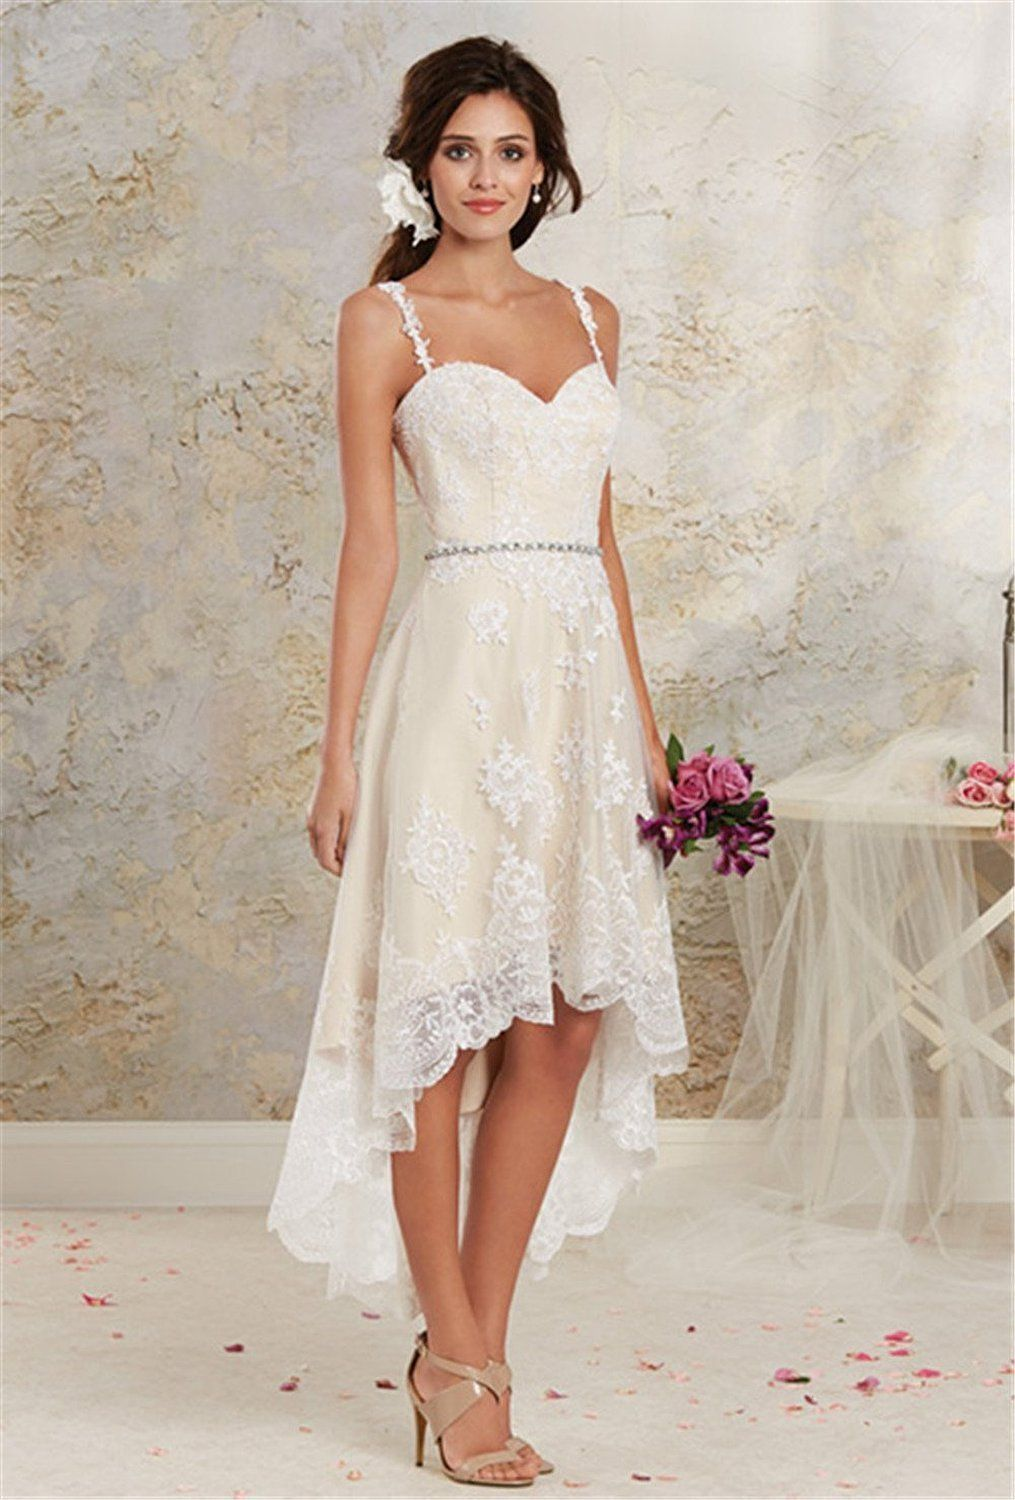 Cute  Vintage High Low Country Wedding Dresses Cheap New Sexy Spaghetti Lace Tea length Short Detachable